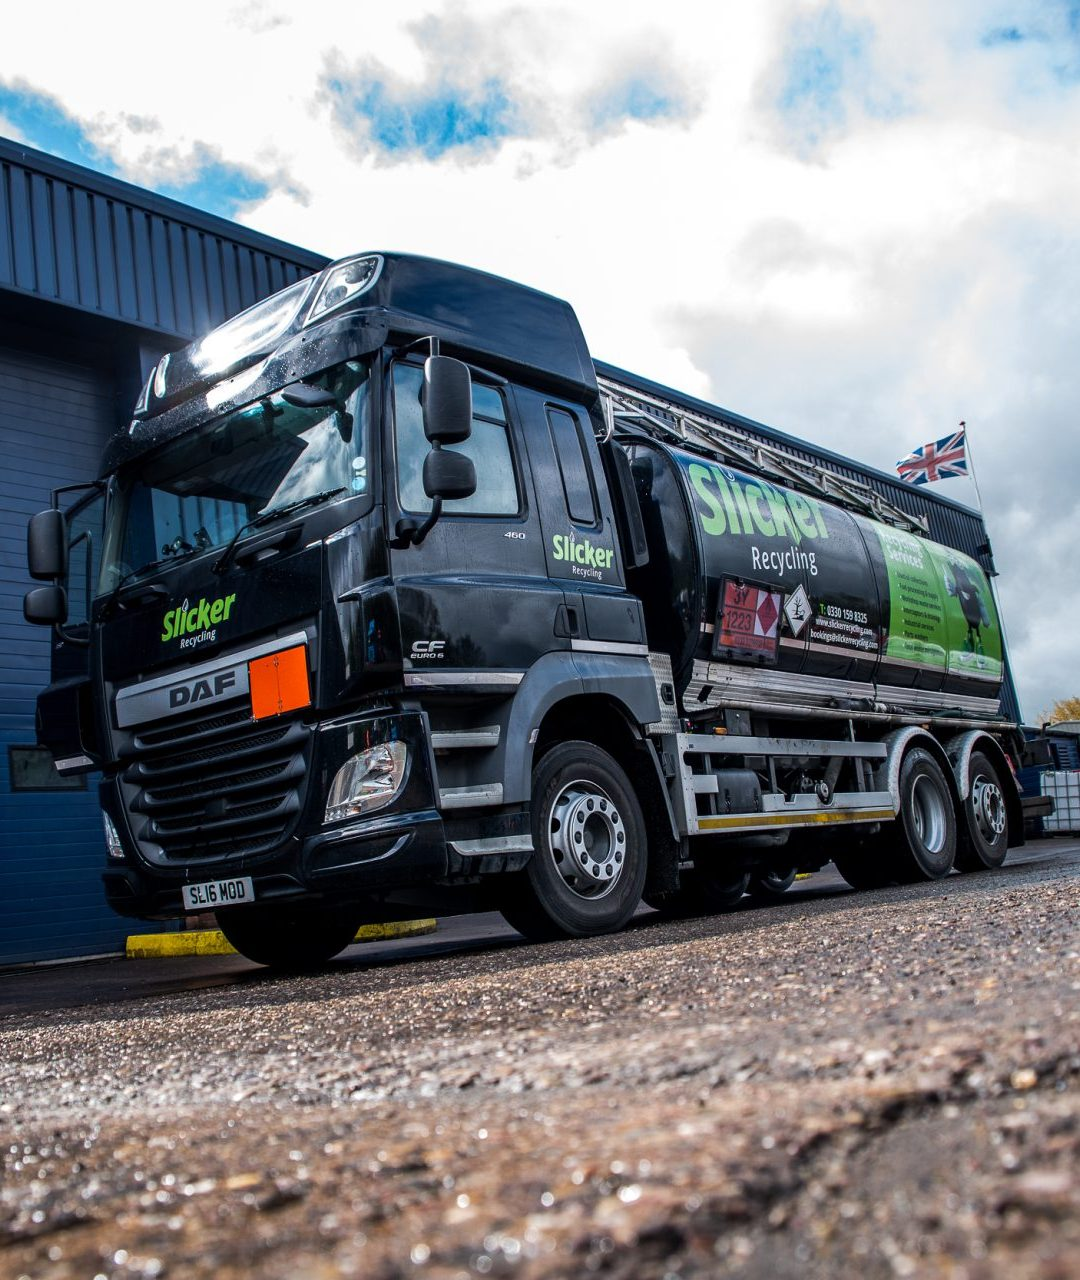 Worcestershire Company Slicker Recycling Up for National Award